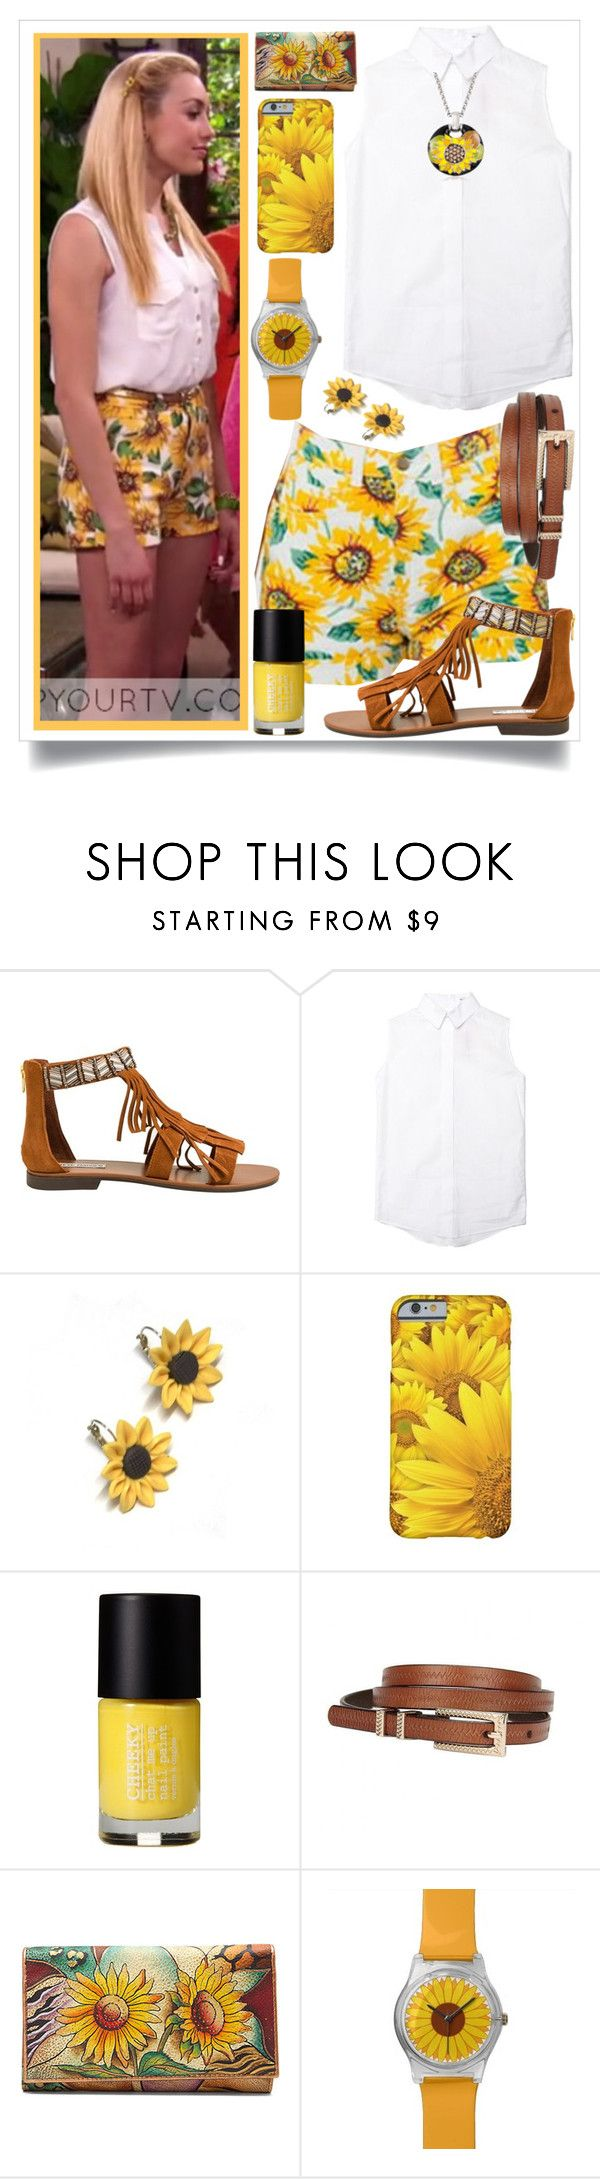 """jessie - Emma Ross 1"" by unwrittenlove ❤ liked on Polyvore featuring Steve Madden, Hannah Makes Things, Cheeky, Anuschka and Belle Etoile"